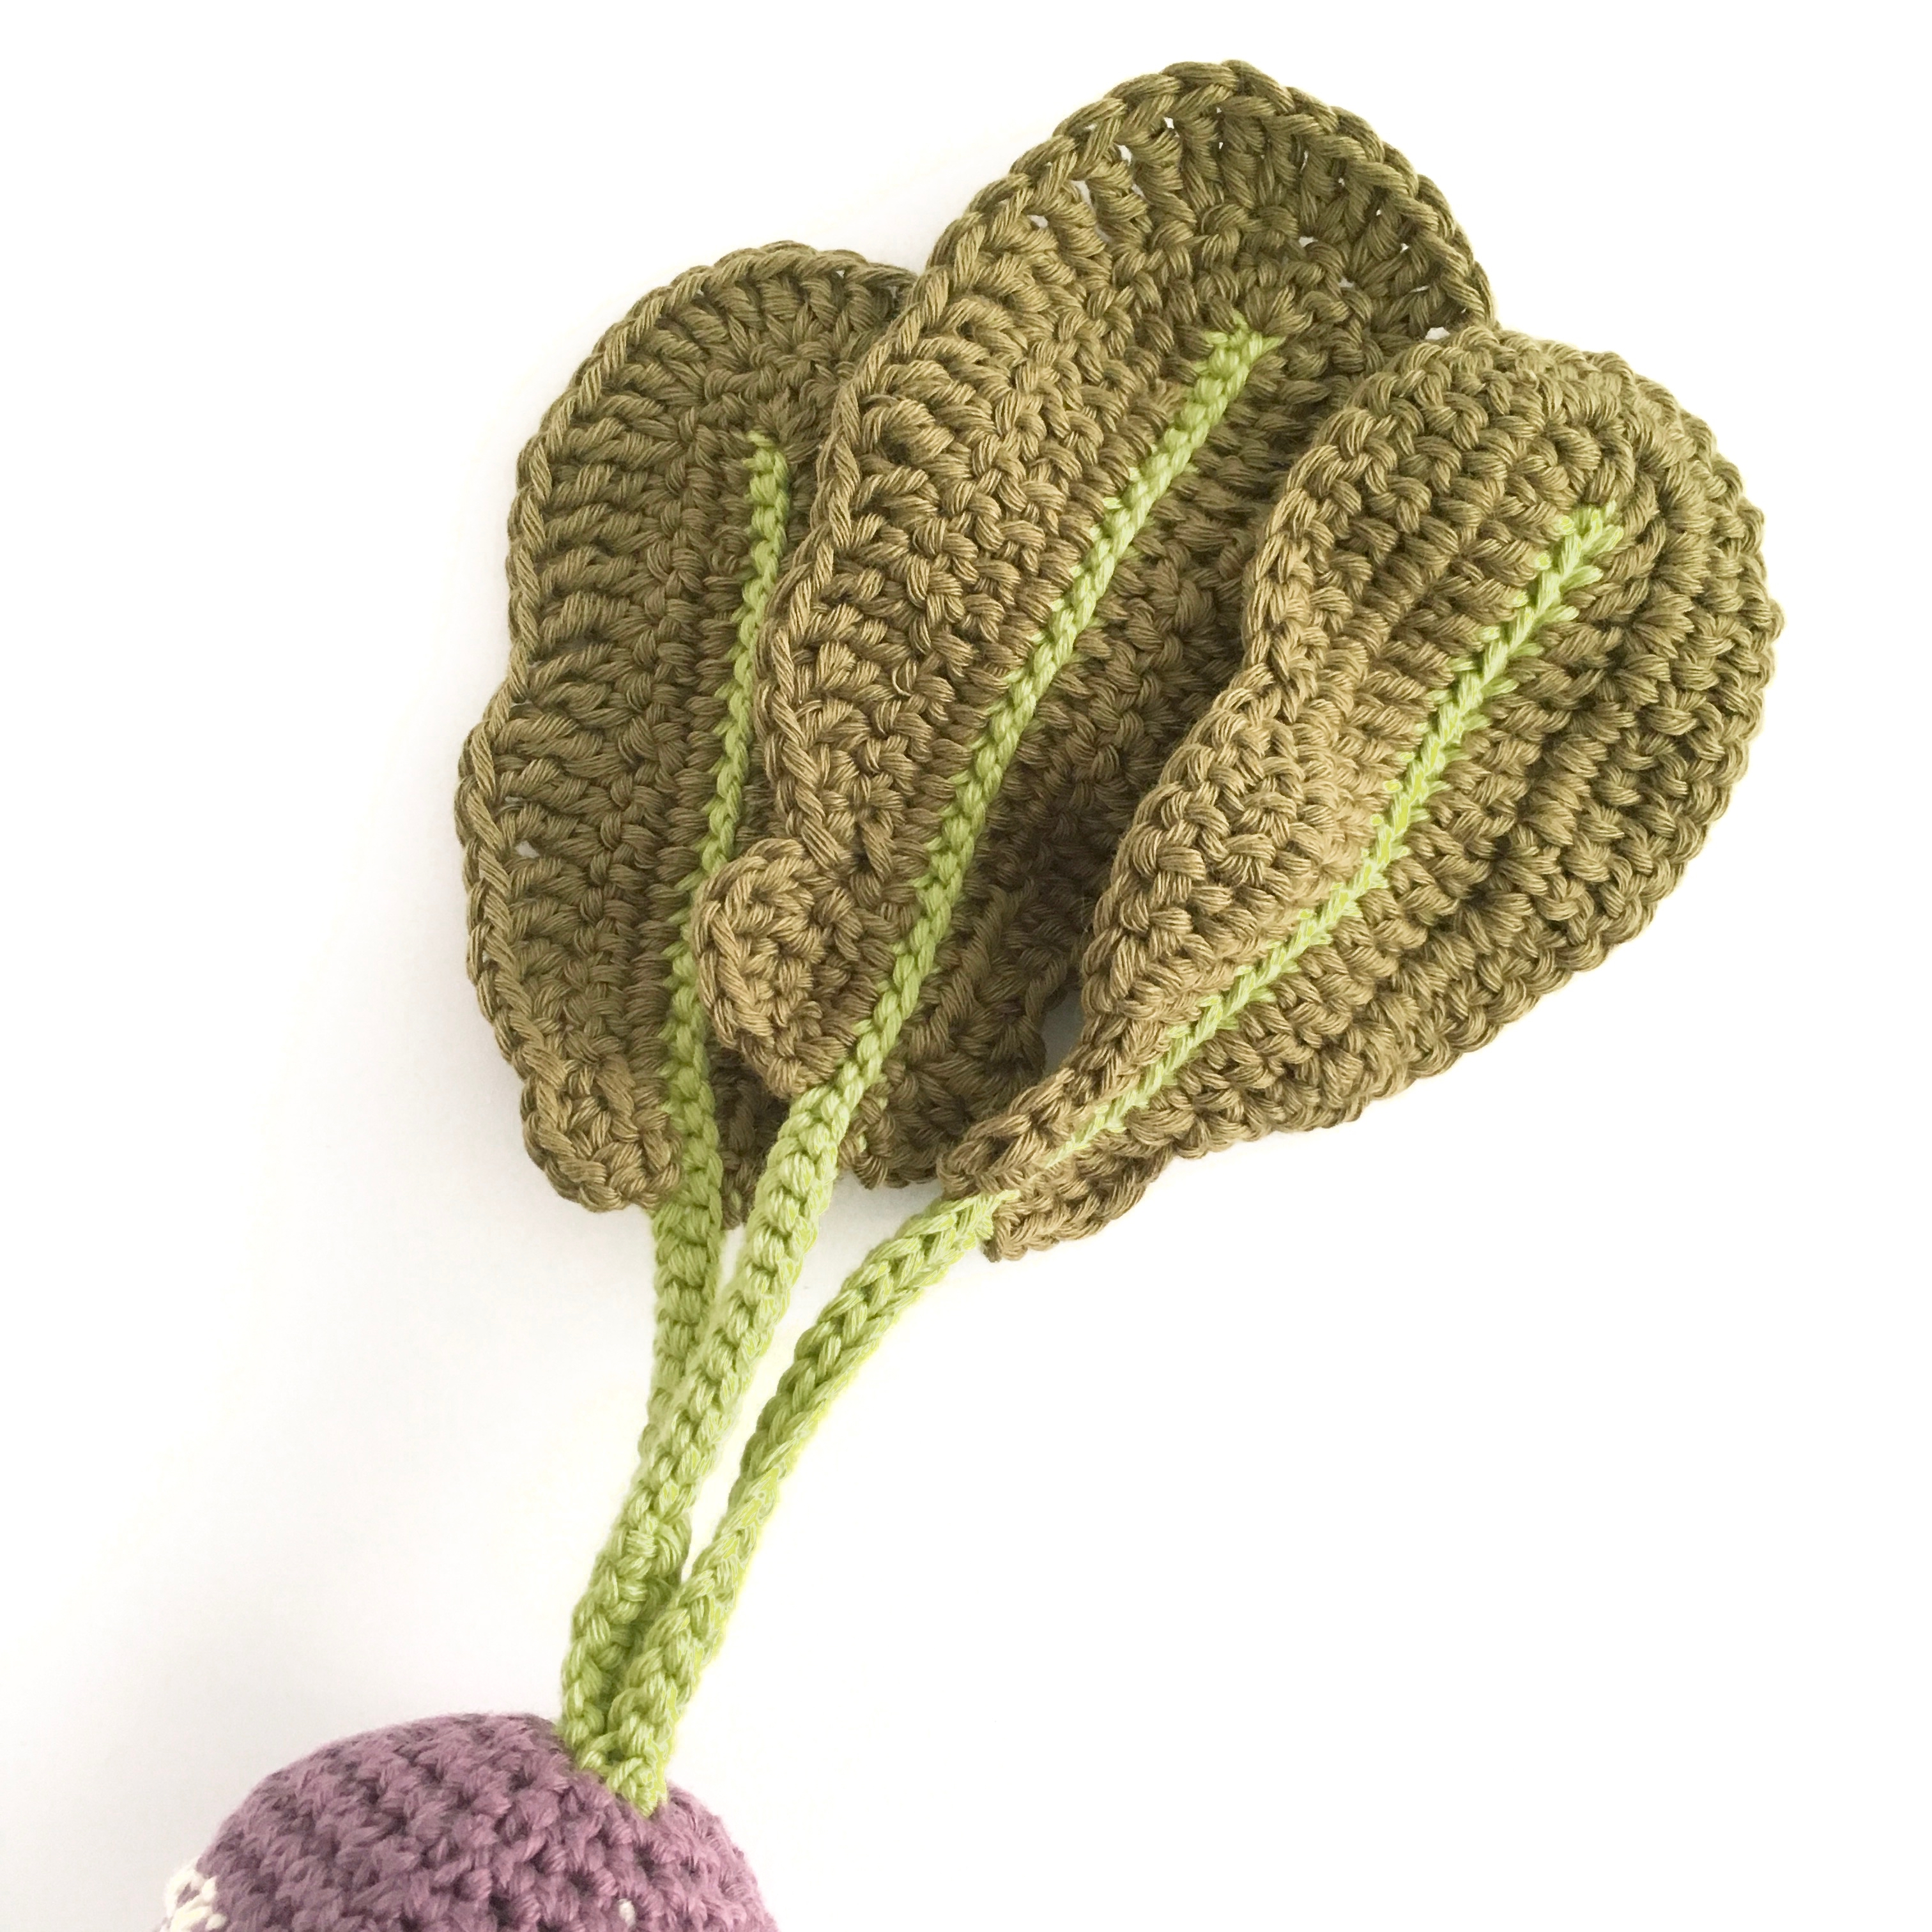 Crochet Turnip Pattern